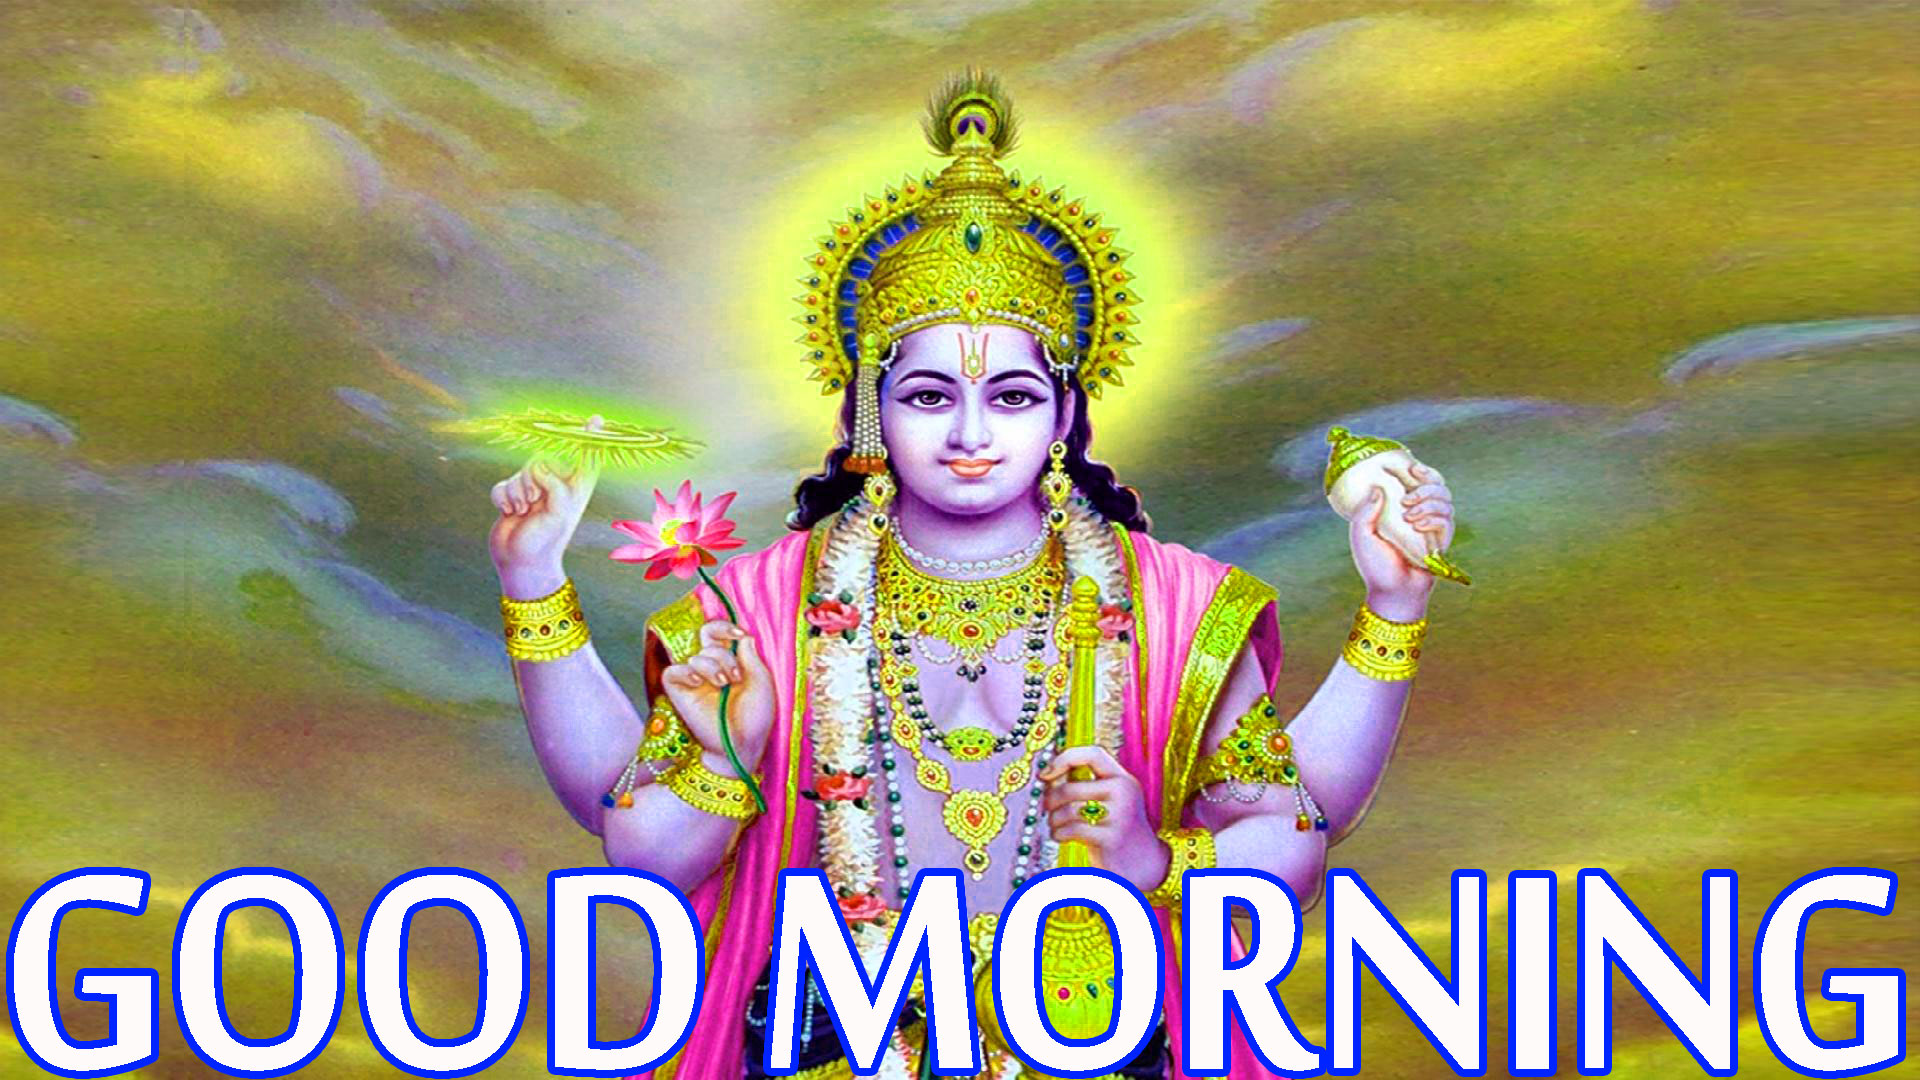 Hindu God Religious Good Morning Images Wallpaper Photo HD Download